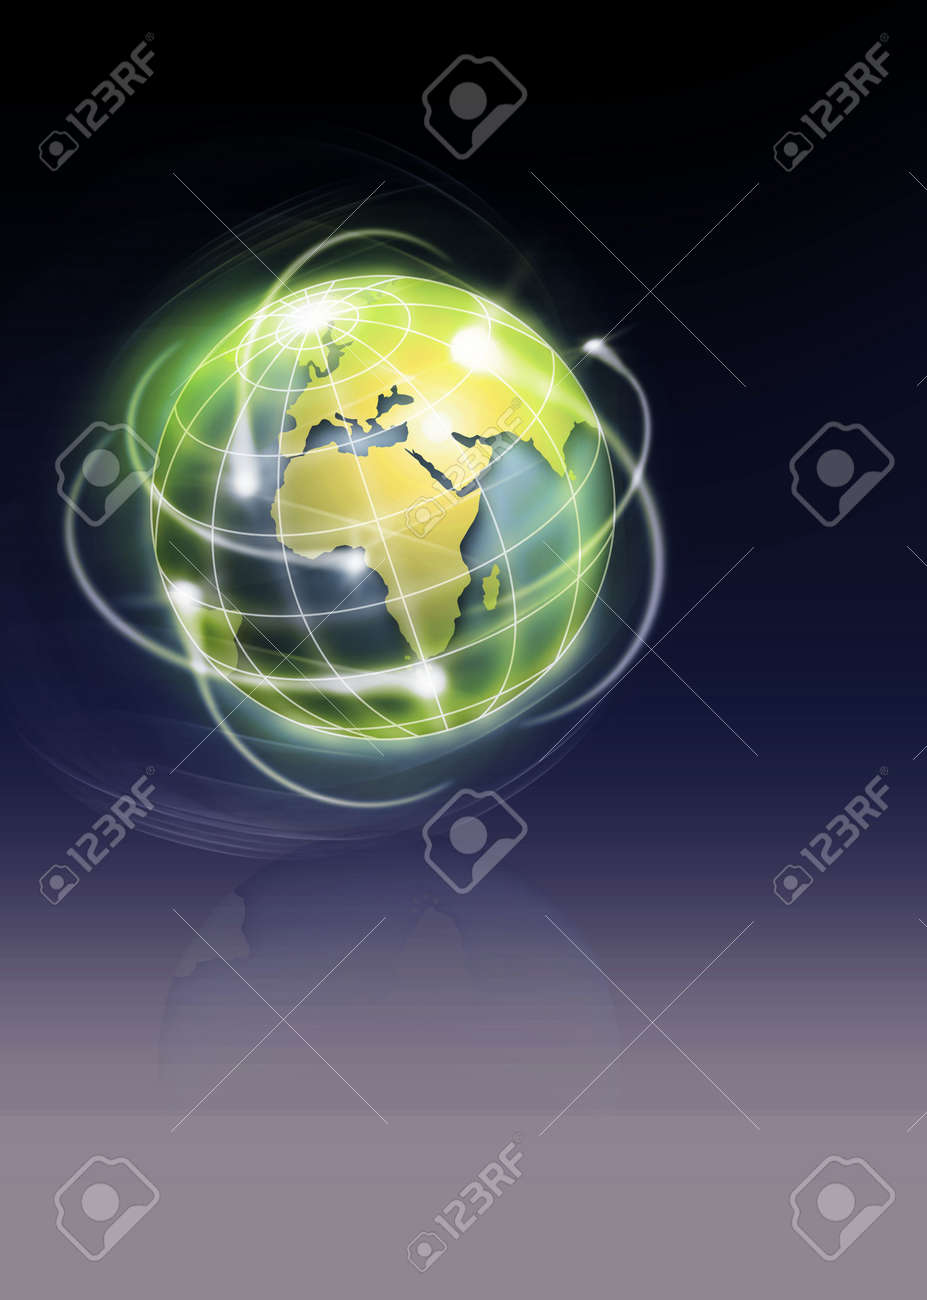 world with international movments as shooting stars Stock Photo - 4940177